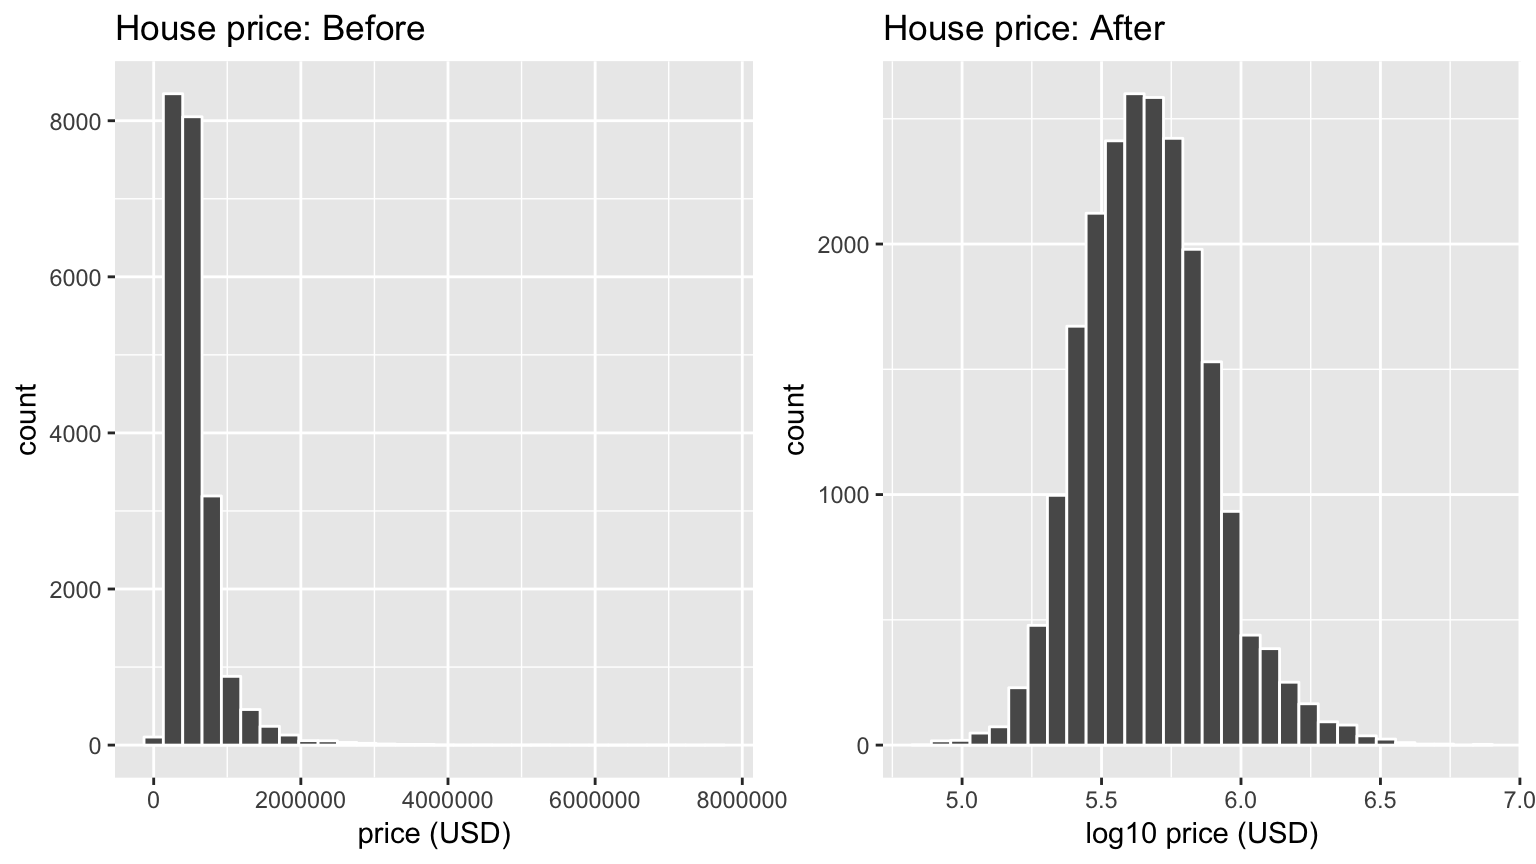 House price before and after log10-transformation